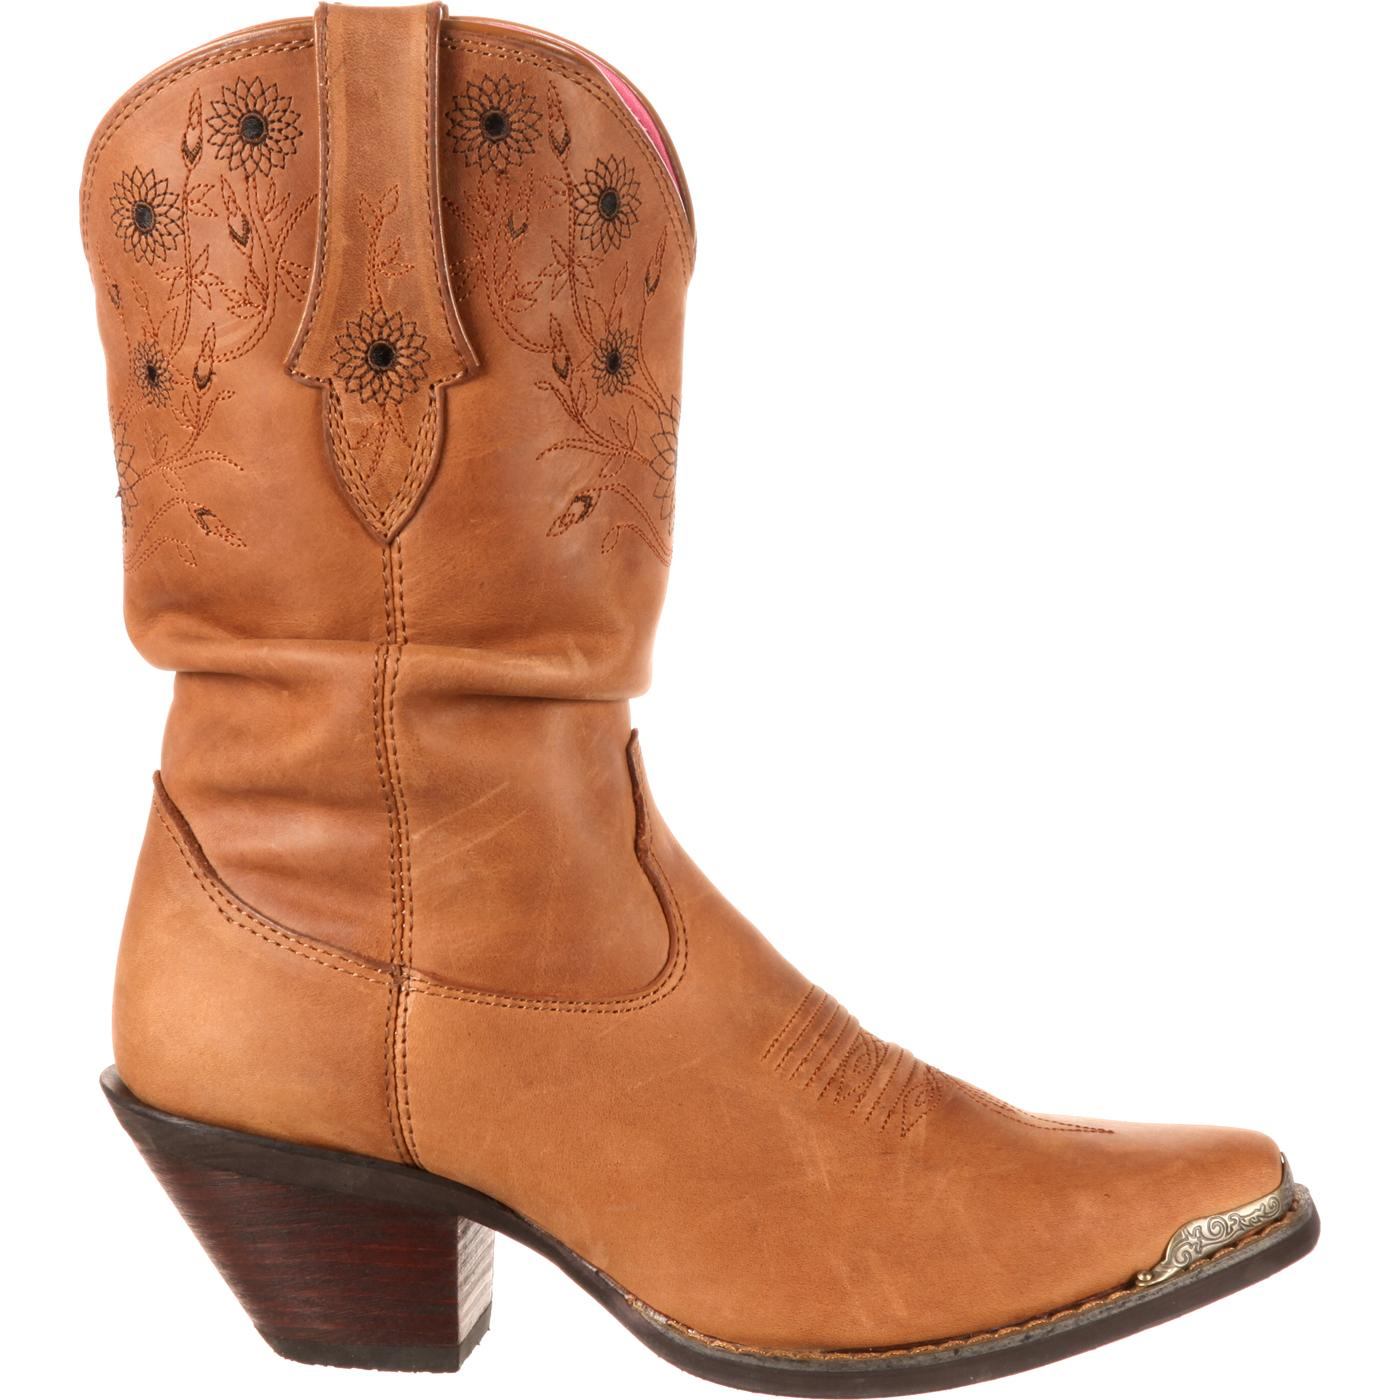 cafc4fc8f79 Crush by Durango Women's Sarah Darling Sunflower Slouch Western Boot